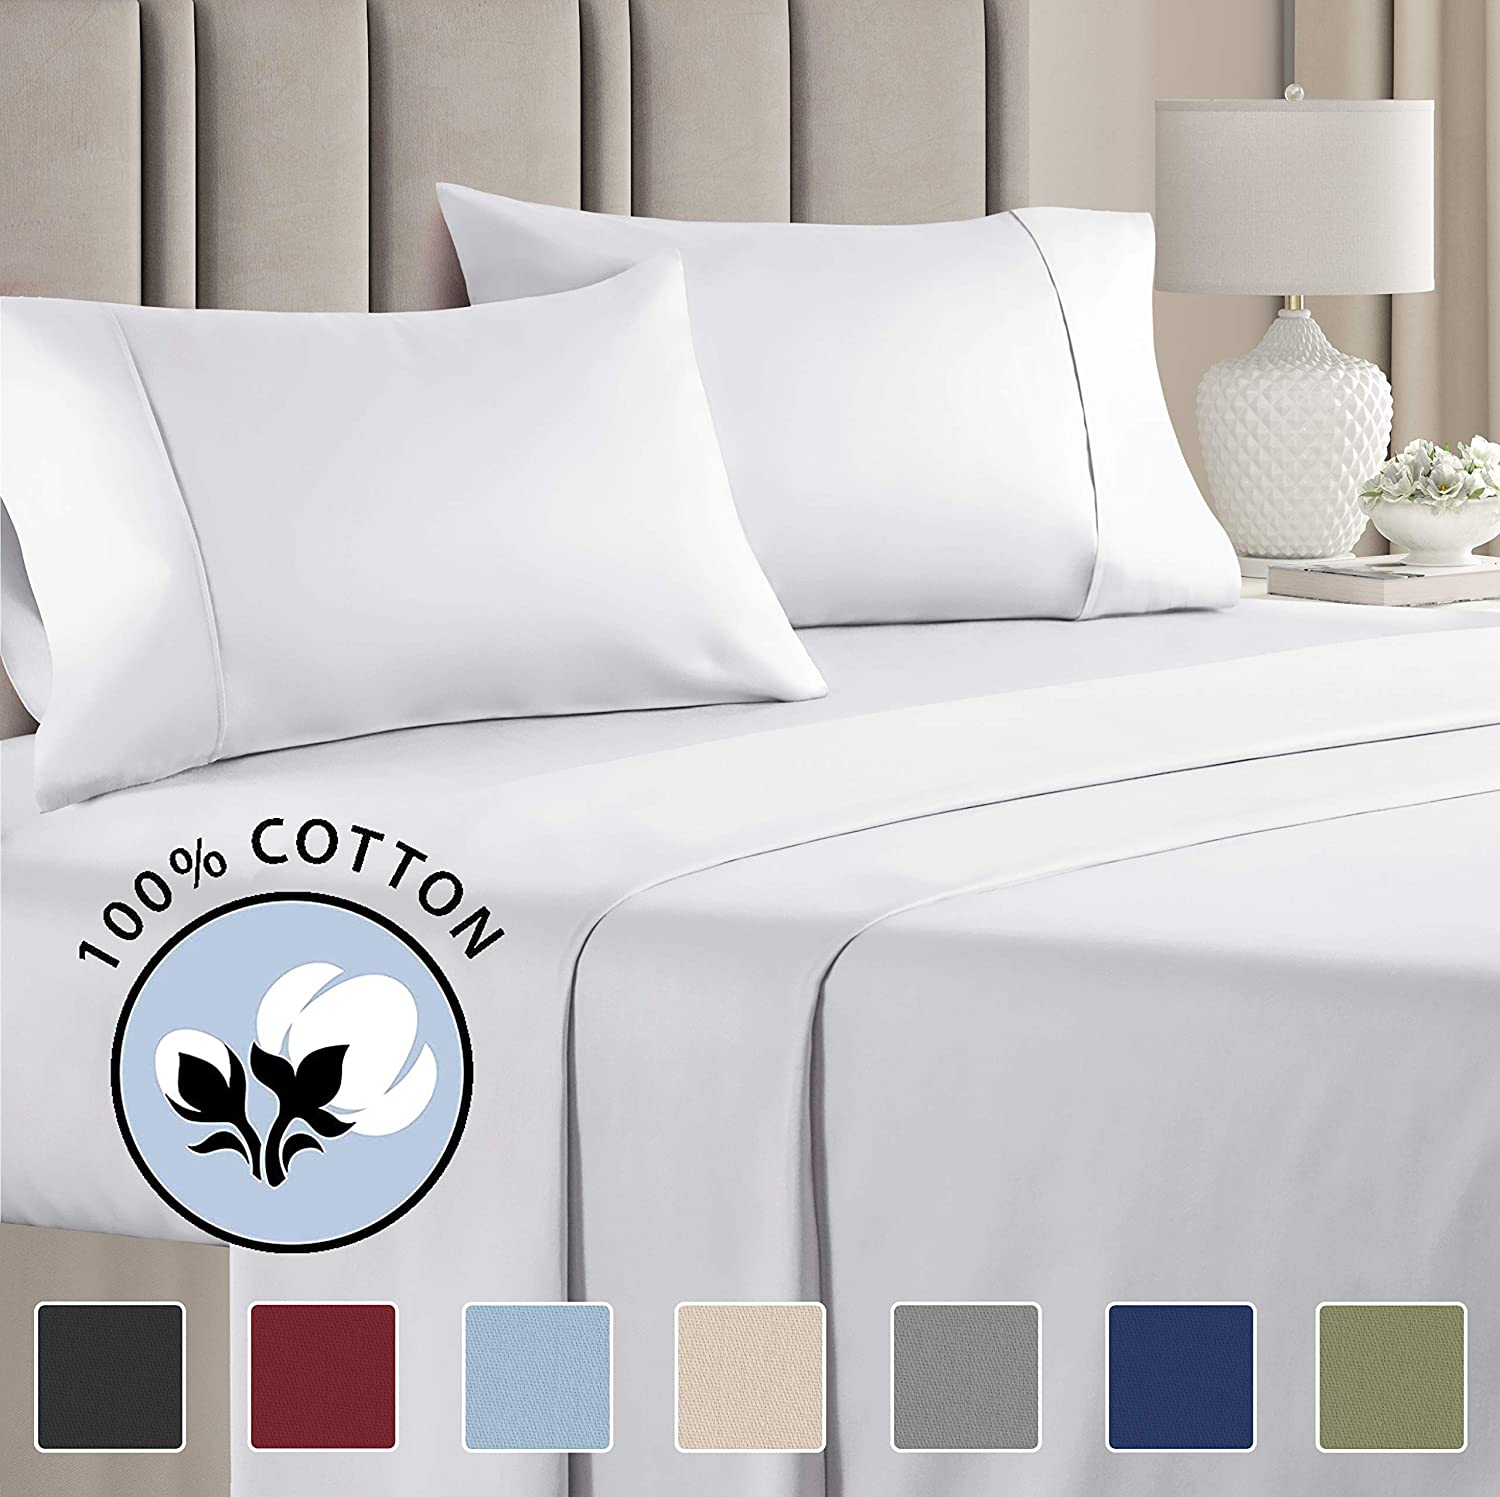 100% Cotton Cal King Sheets White (4pc) Silky Smooth, Cooling 400 Thread Count Long Staple Combed Cotton Cal King Sheet Set – Pure 400TC High Thread Count Cal King Sheets - Cal King Bed Sheets Cotton